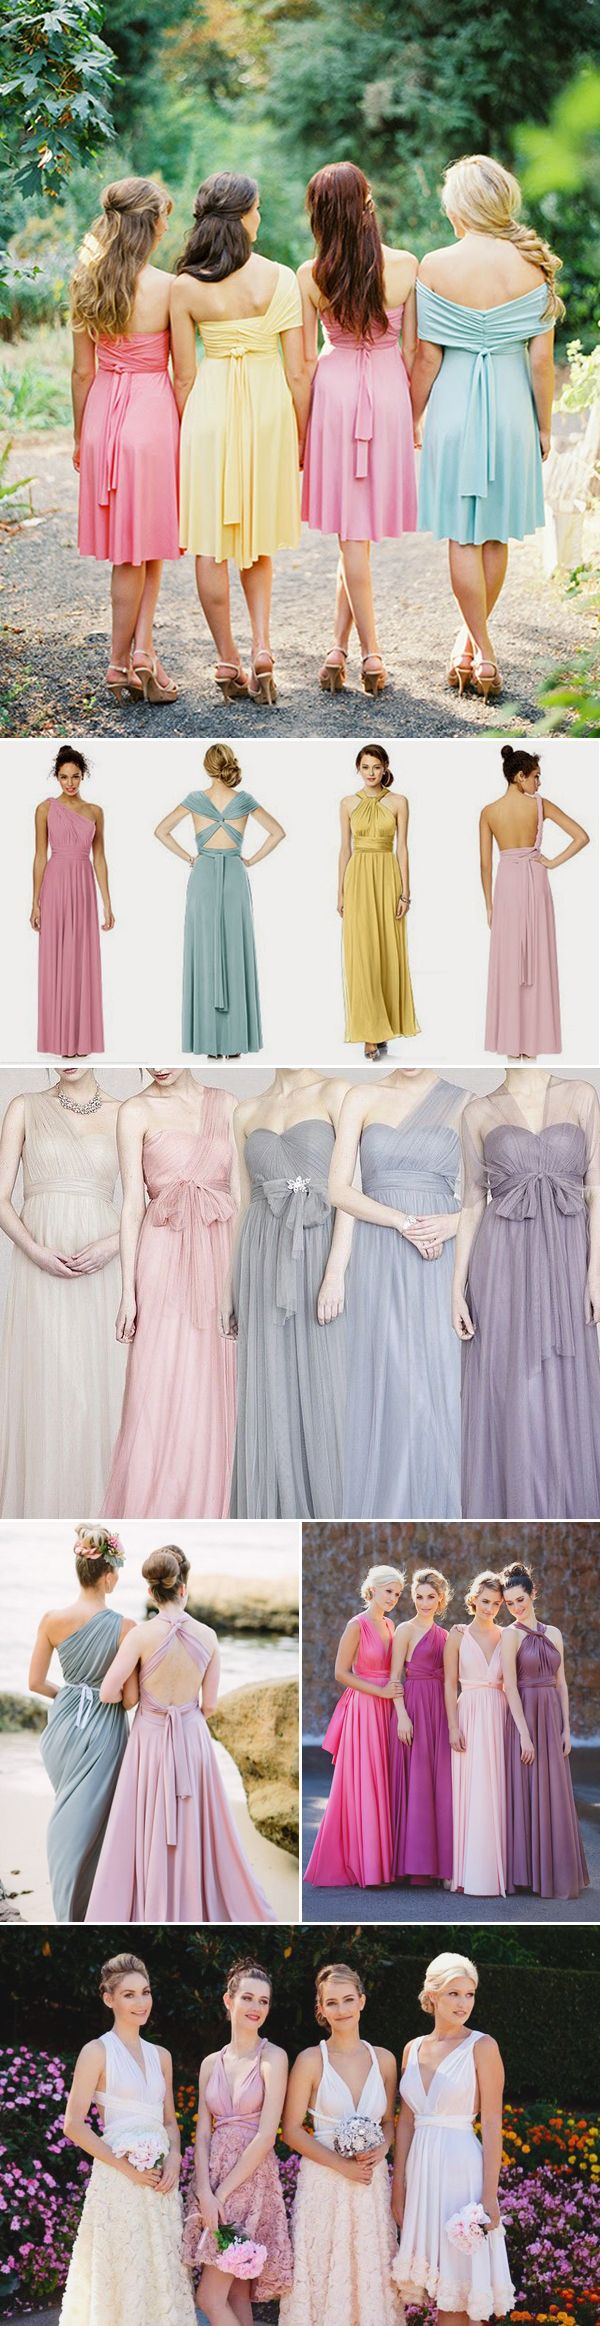 20 Chic and Stylish Convertible (Twist-Wrap) Bridesmaid Dresses - Mismatched colors